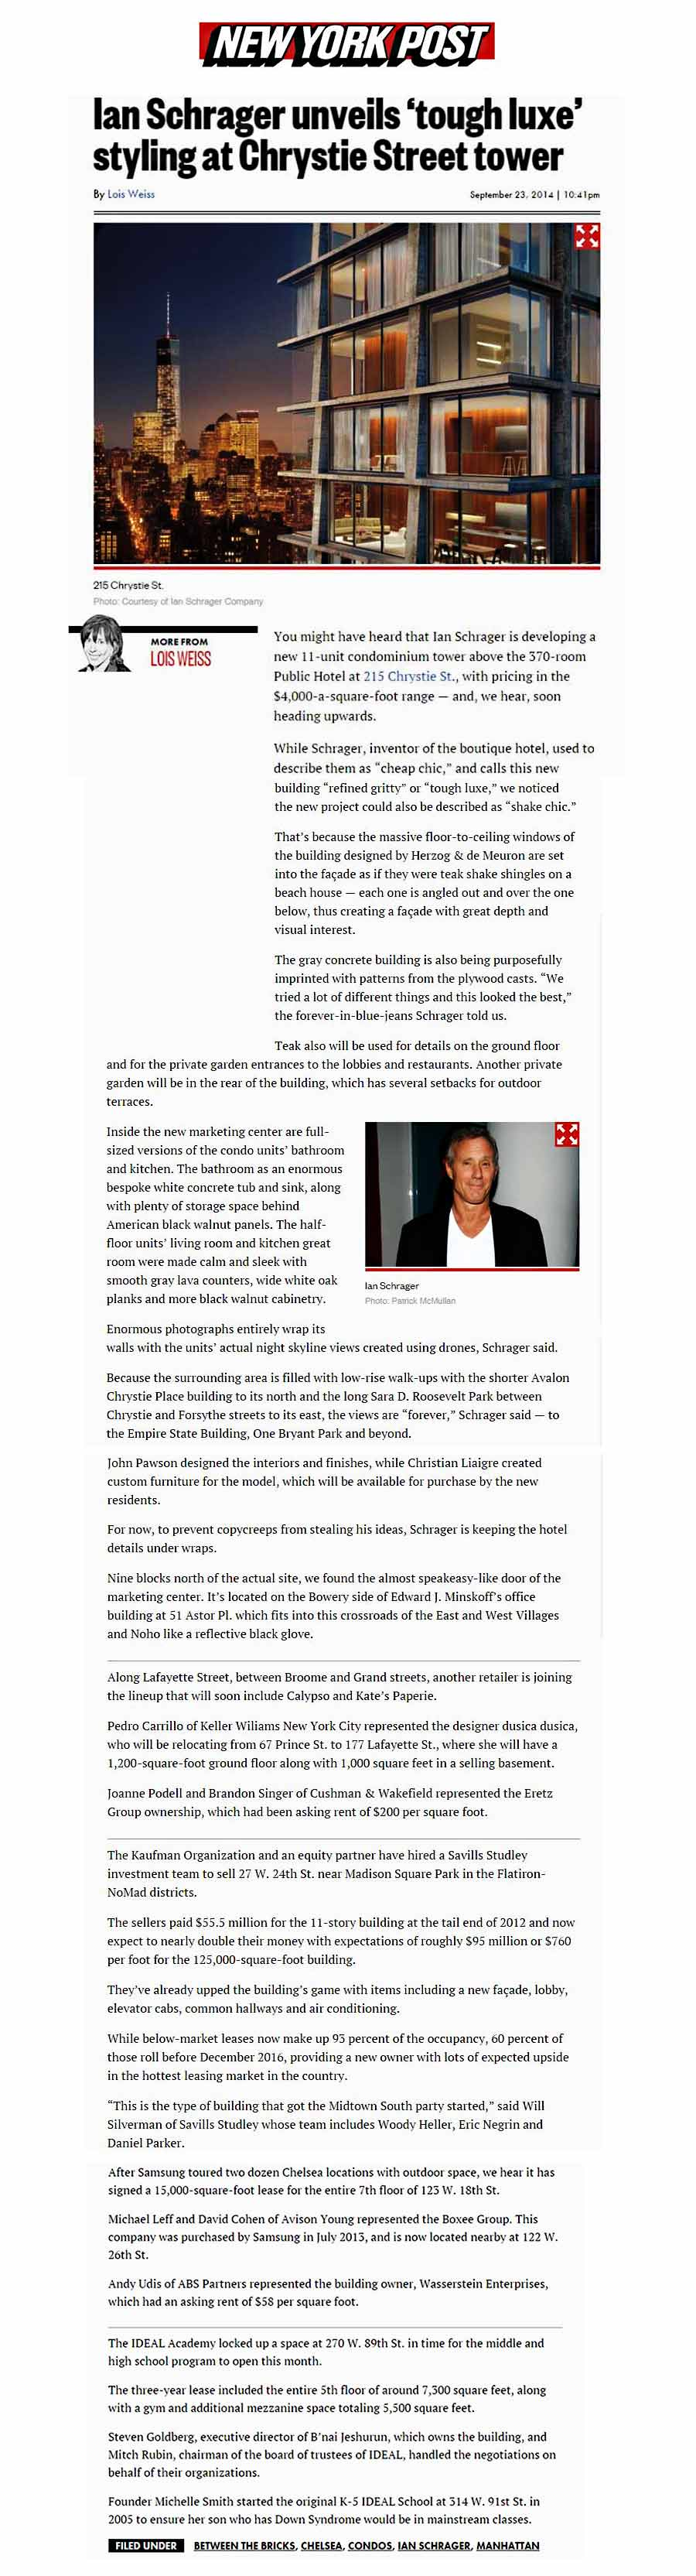 New-York-Post-(online)---Ian-Schrager-unveils-Gtough-luxe-styling-at-Chrystie-Street-tower---9.23